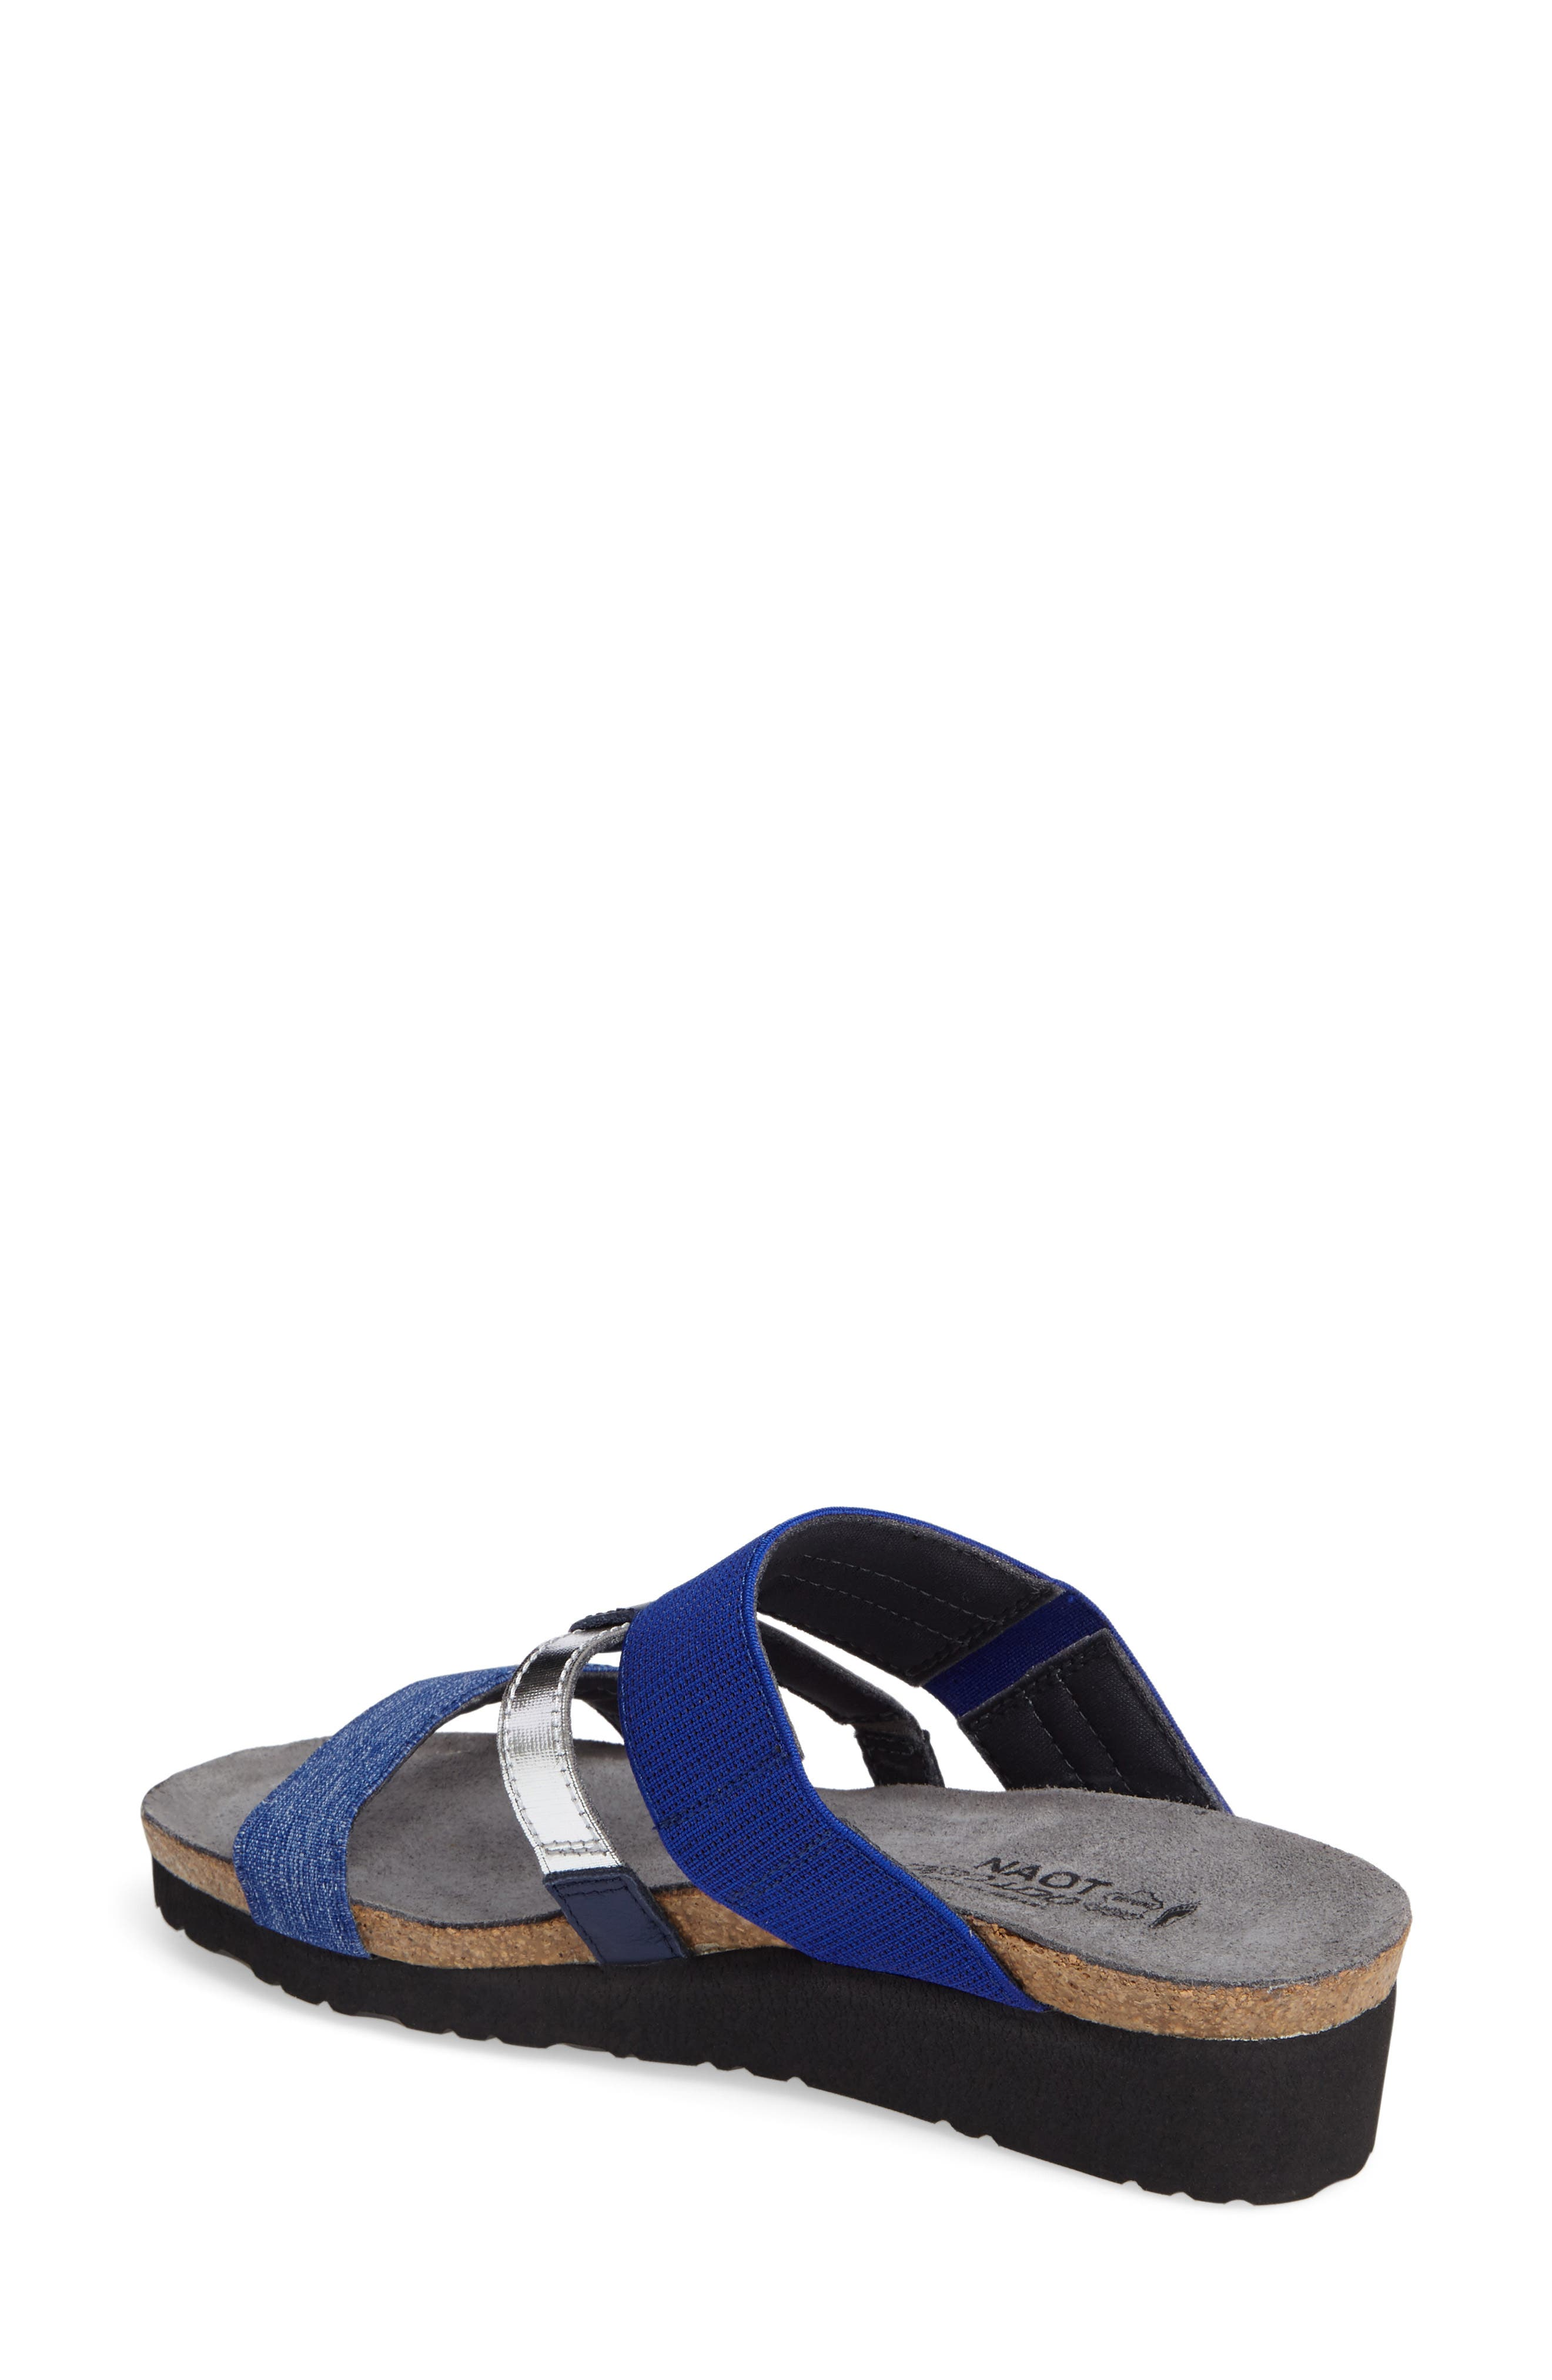 Alternate Image 2  - Naot 'Brenda' Slip-On Sandal (Women)